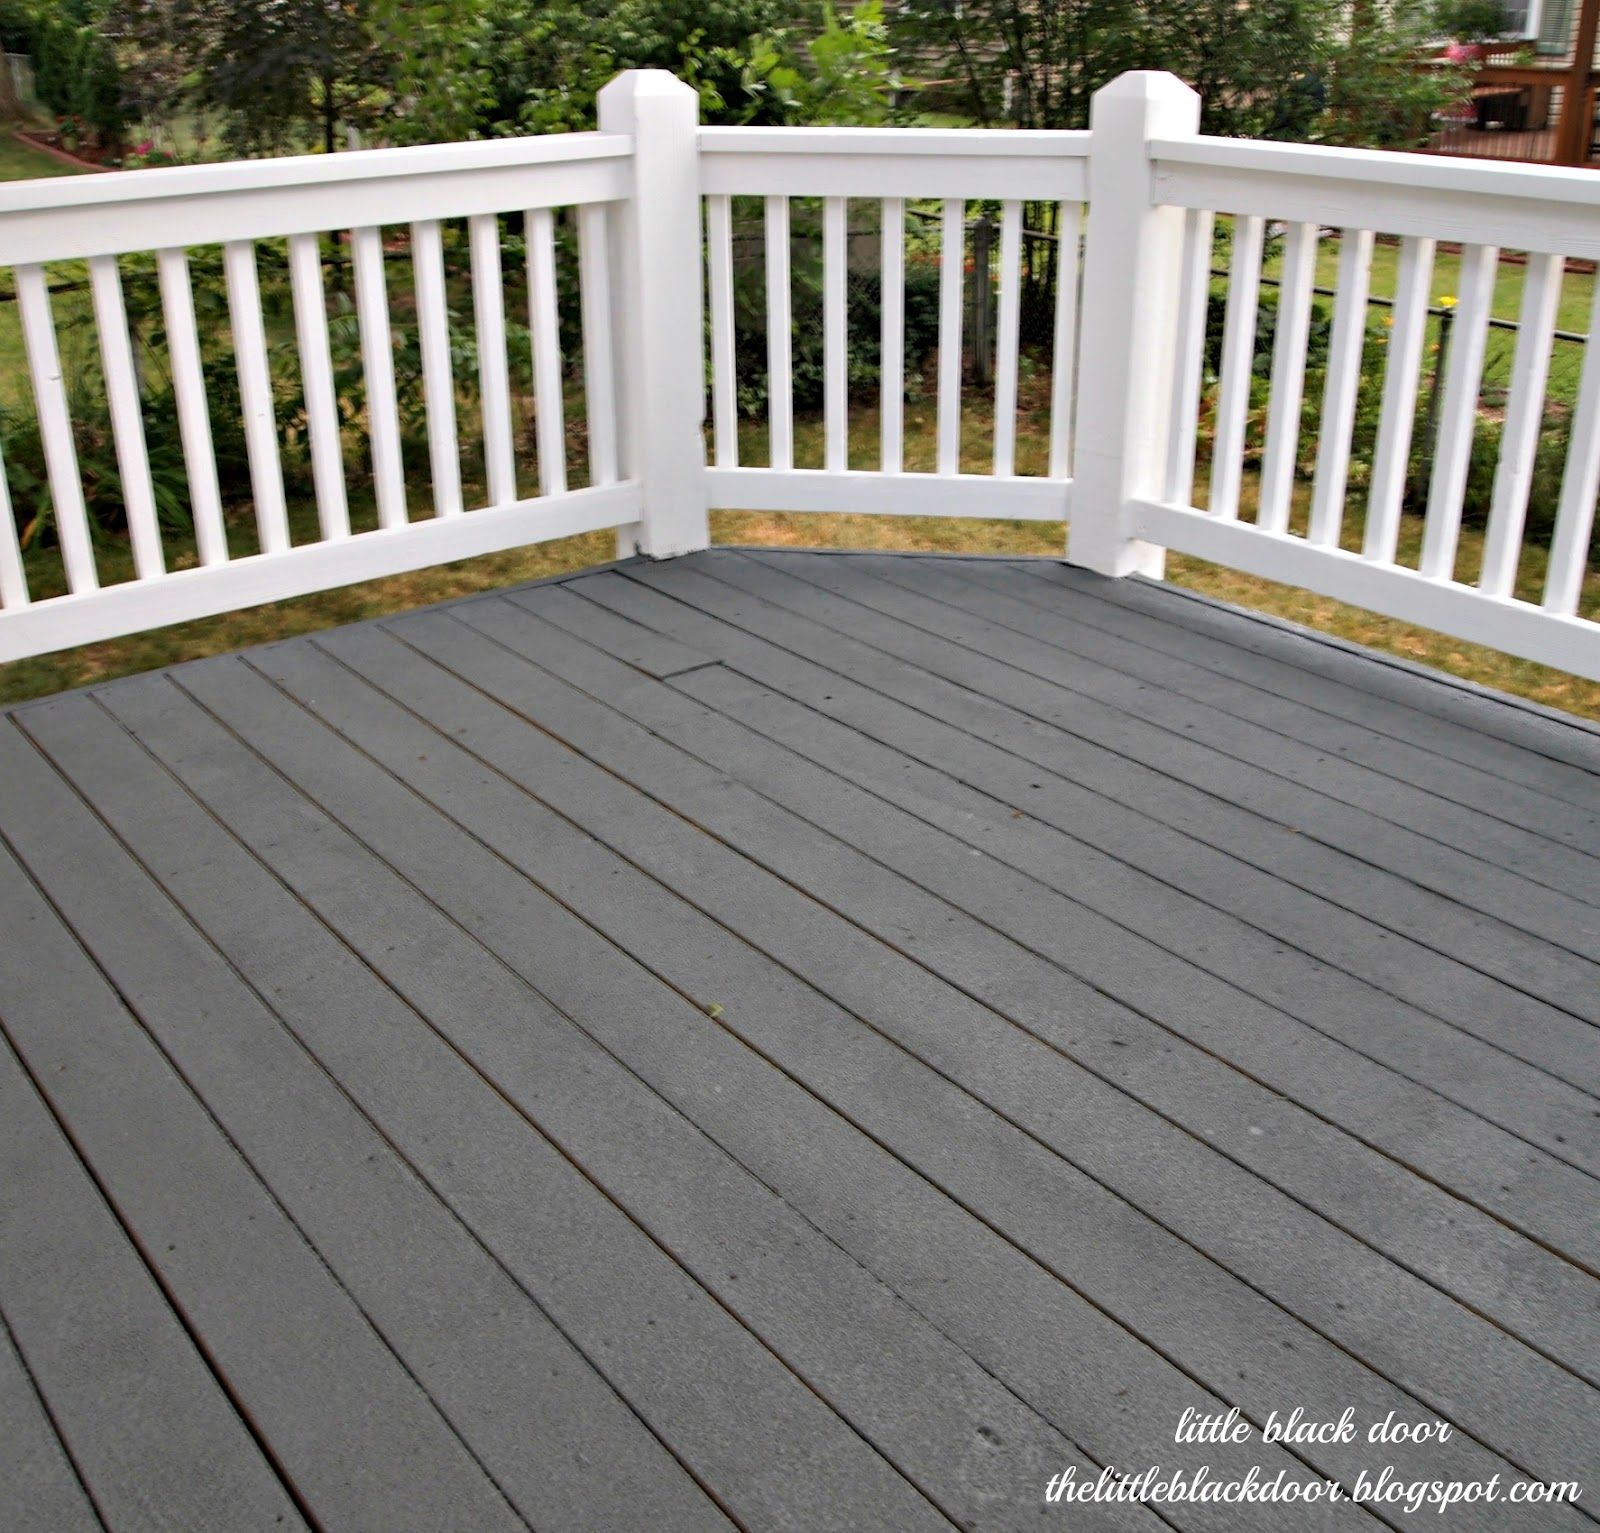 I Wear My Sunglasses At Night Deck Reveal Deck Paint Deck Colors Staining Deck